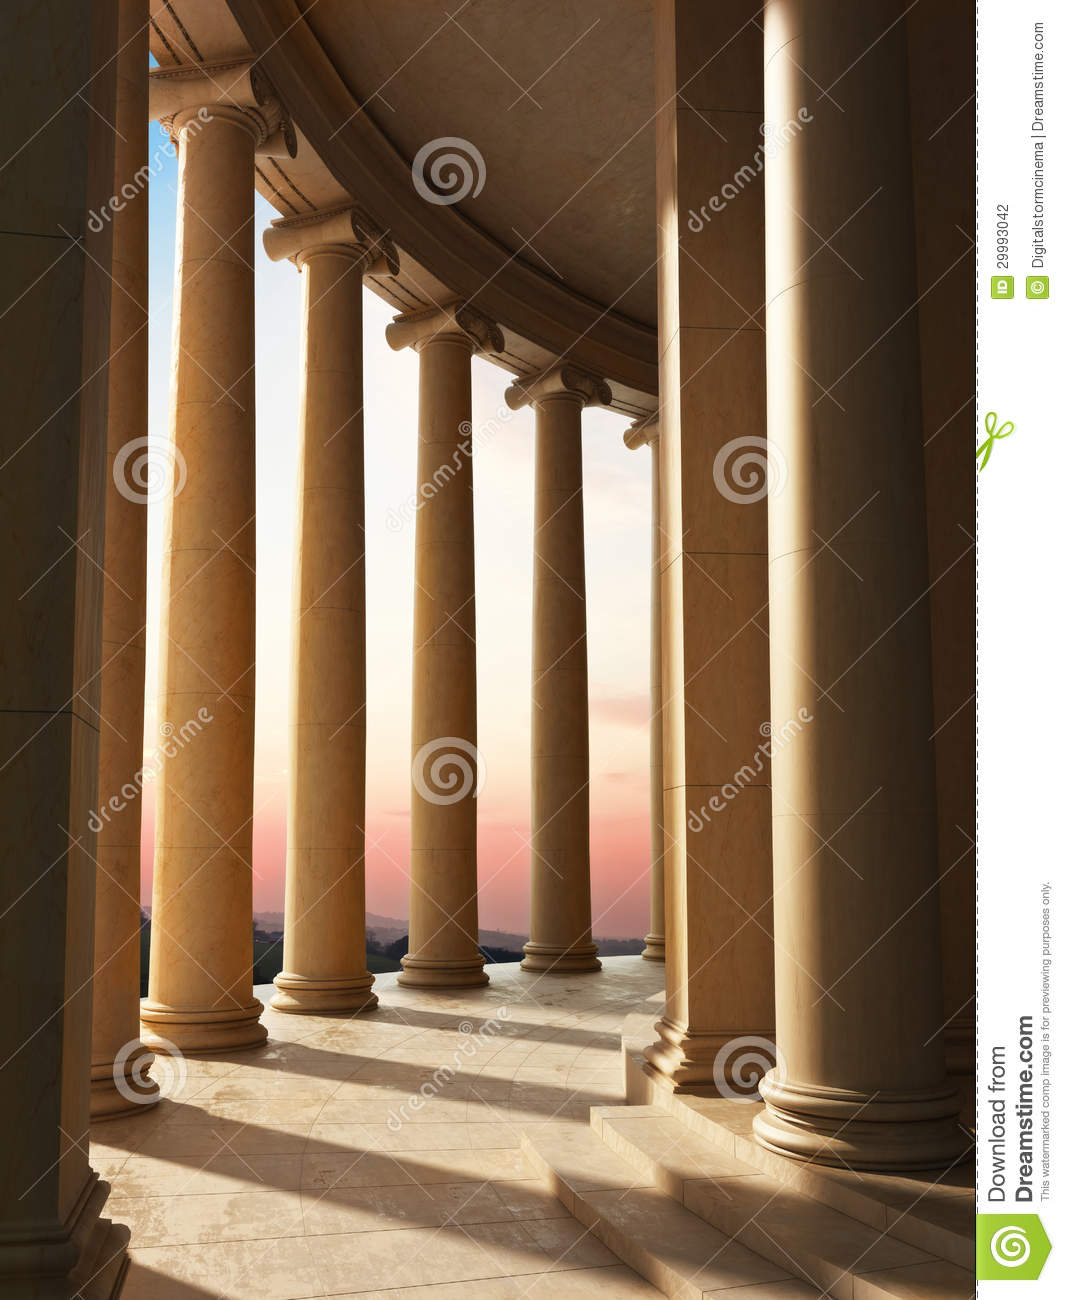 Column architecture stock photography image 29993042 for V column architecture